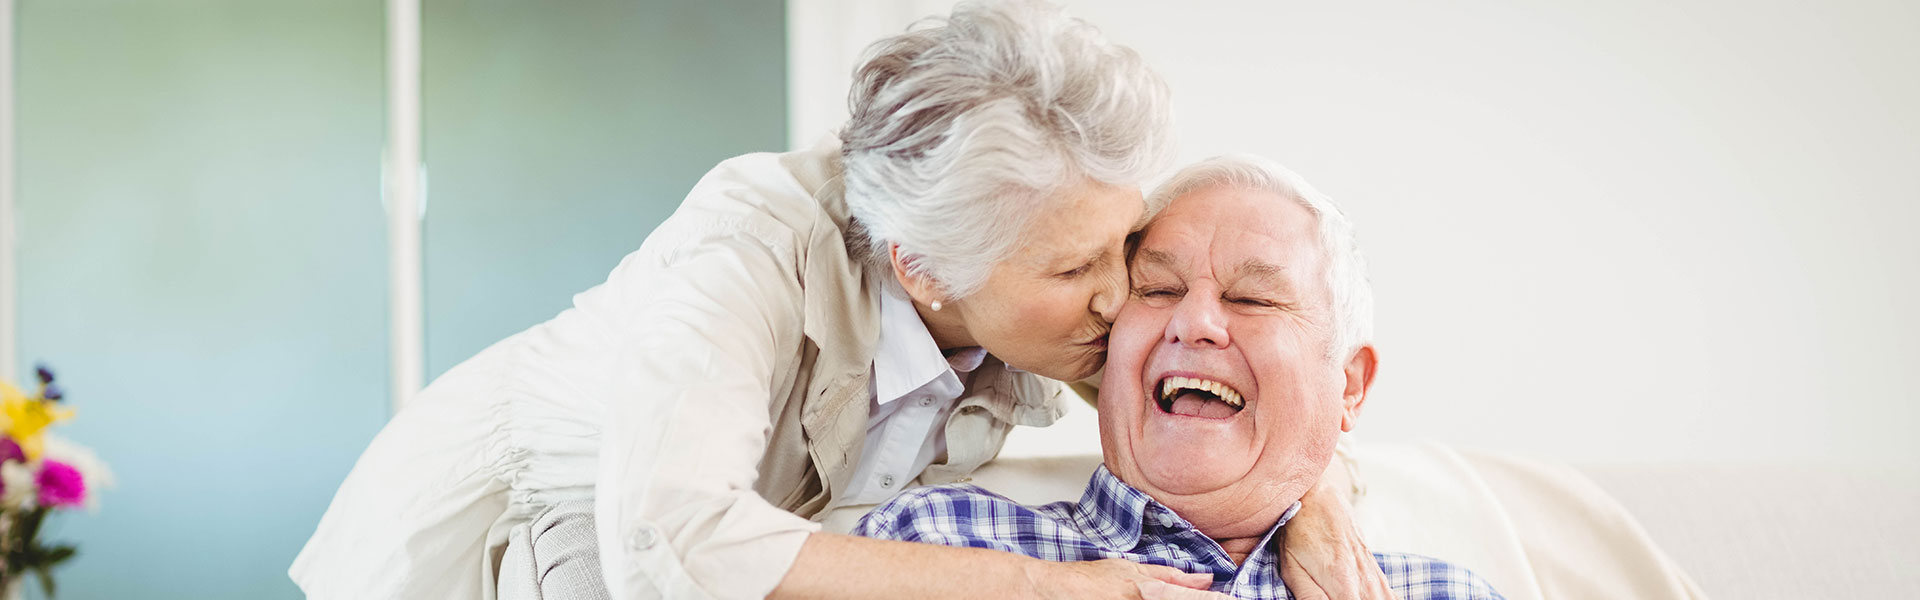 Happy older couple with healthy teeth